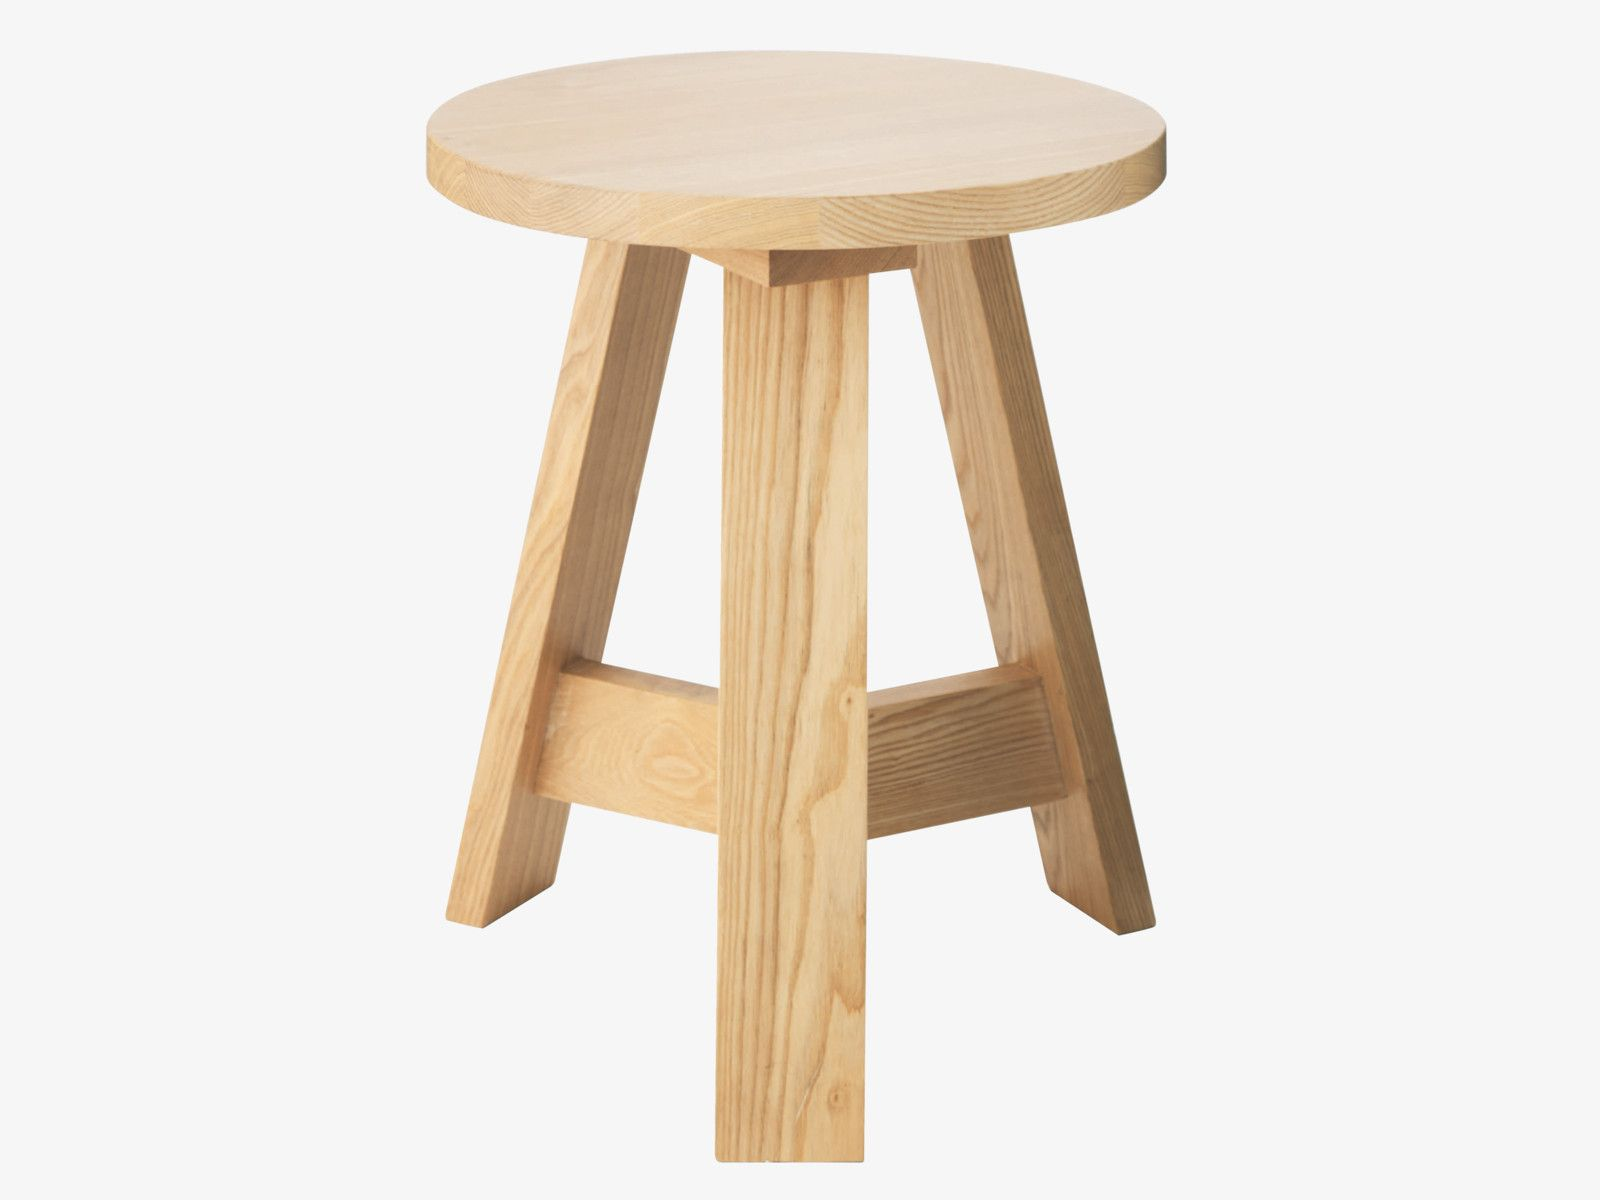 ETHAN NATURAL Wood Round stool Chairs and Benches HabitatUK